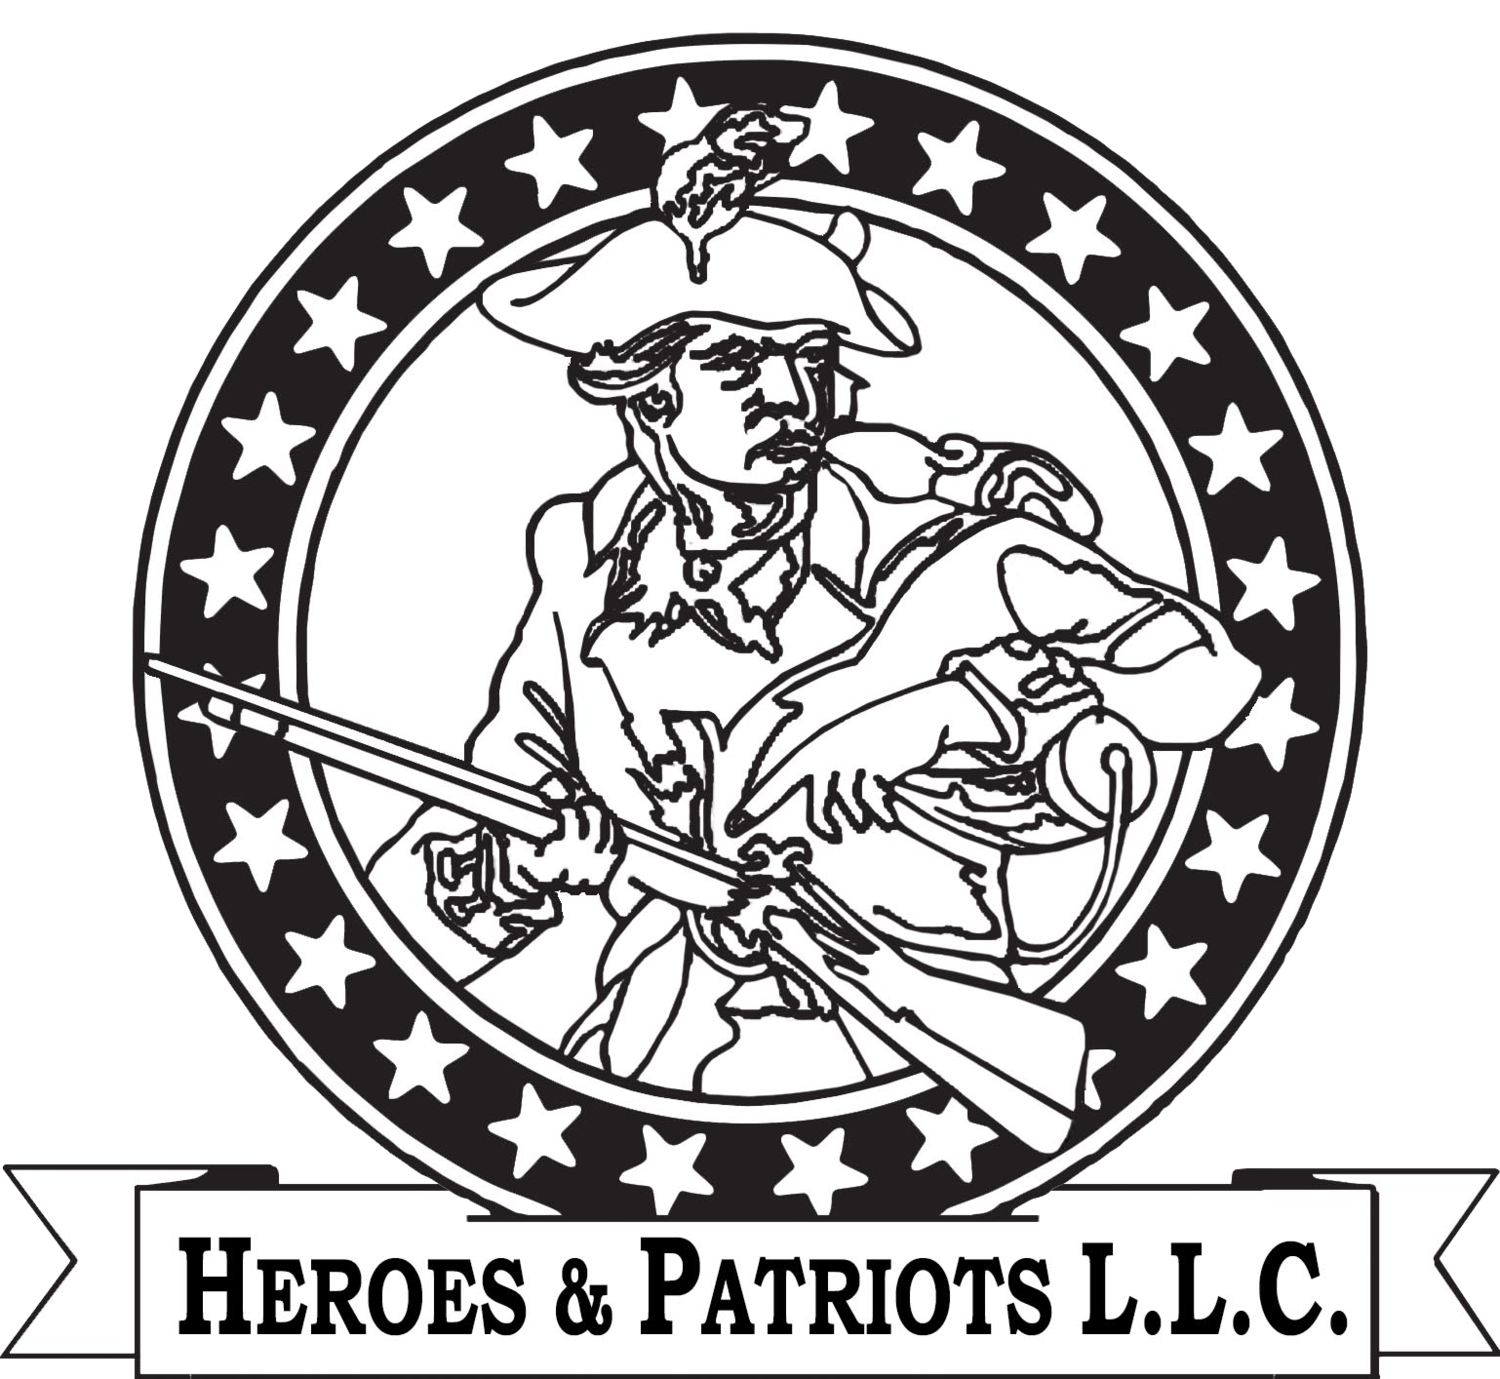 Minuteman drawing second amendment. Foundation trump rifle heroes